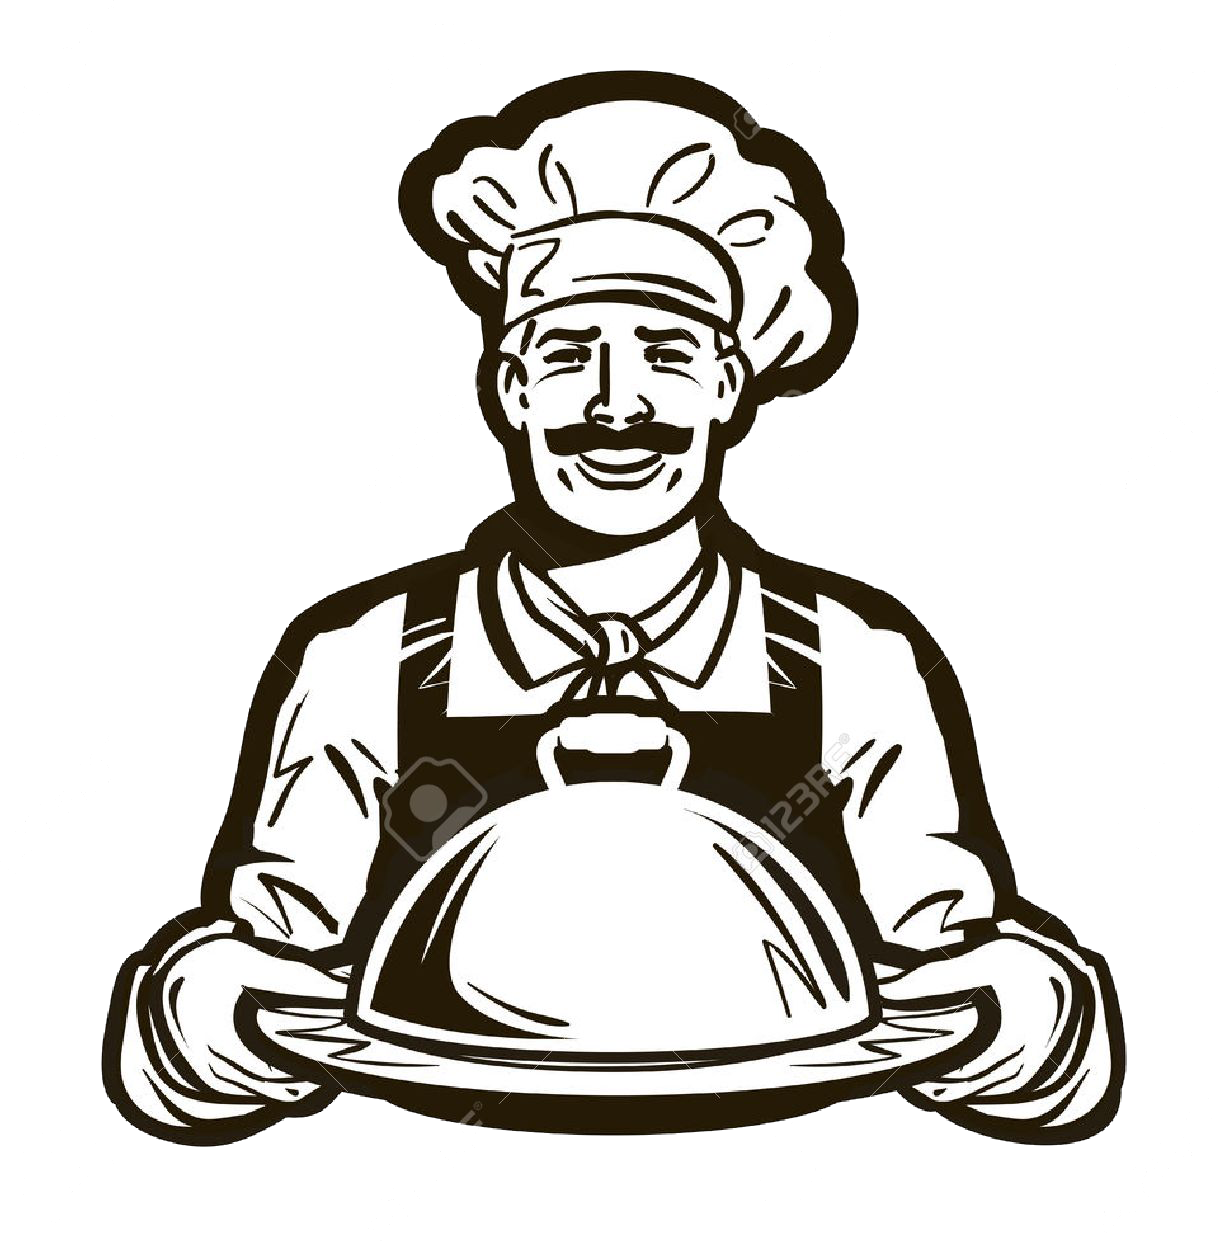 Catering clipart catering logo. Cafe clip art vector